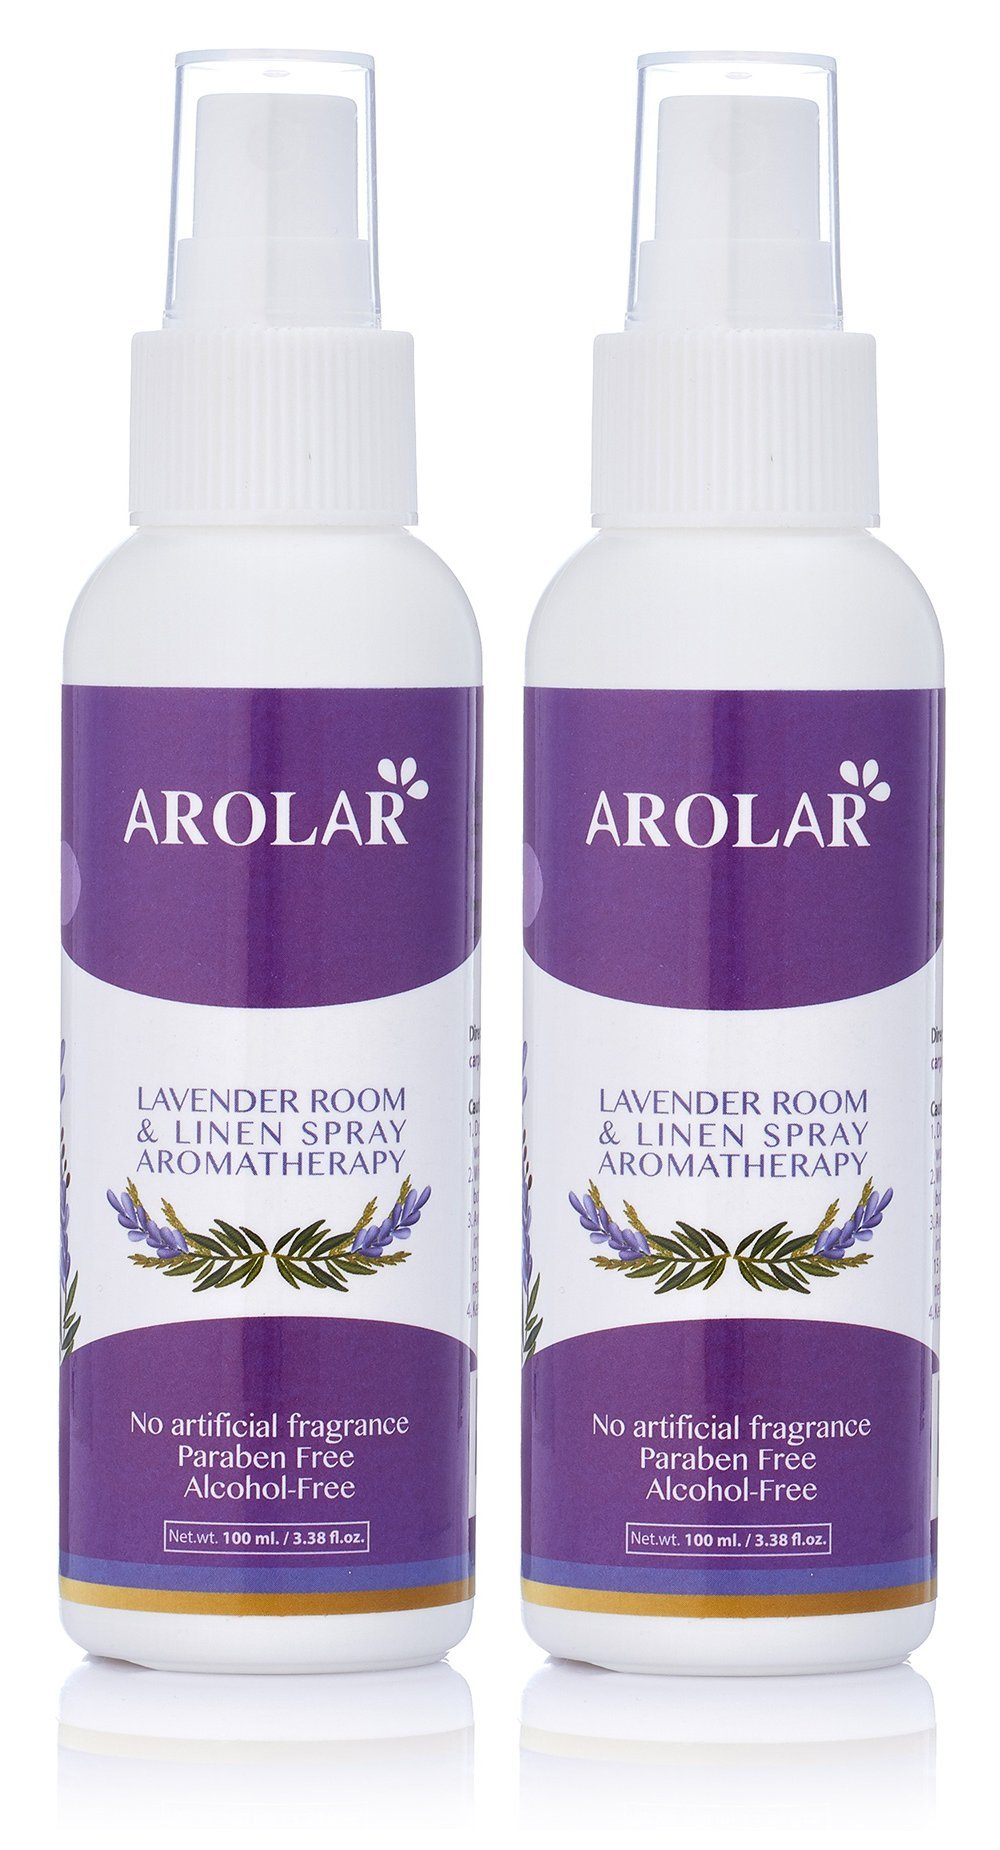 Lavender Room And Linen Spray - Natural Aromatherapy Mist & Beds Fresh Floral Spray For Relaxing Atmosphere, Room Air Freshener & Odor Eliminator - Prue Essential Oils, 3.38 Ounce Bottle, (Pack of 2)